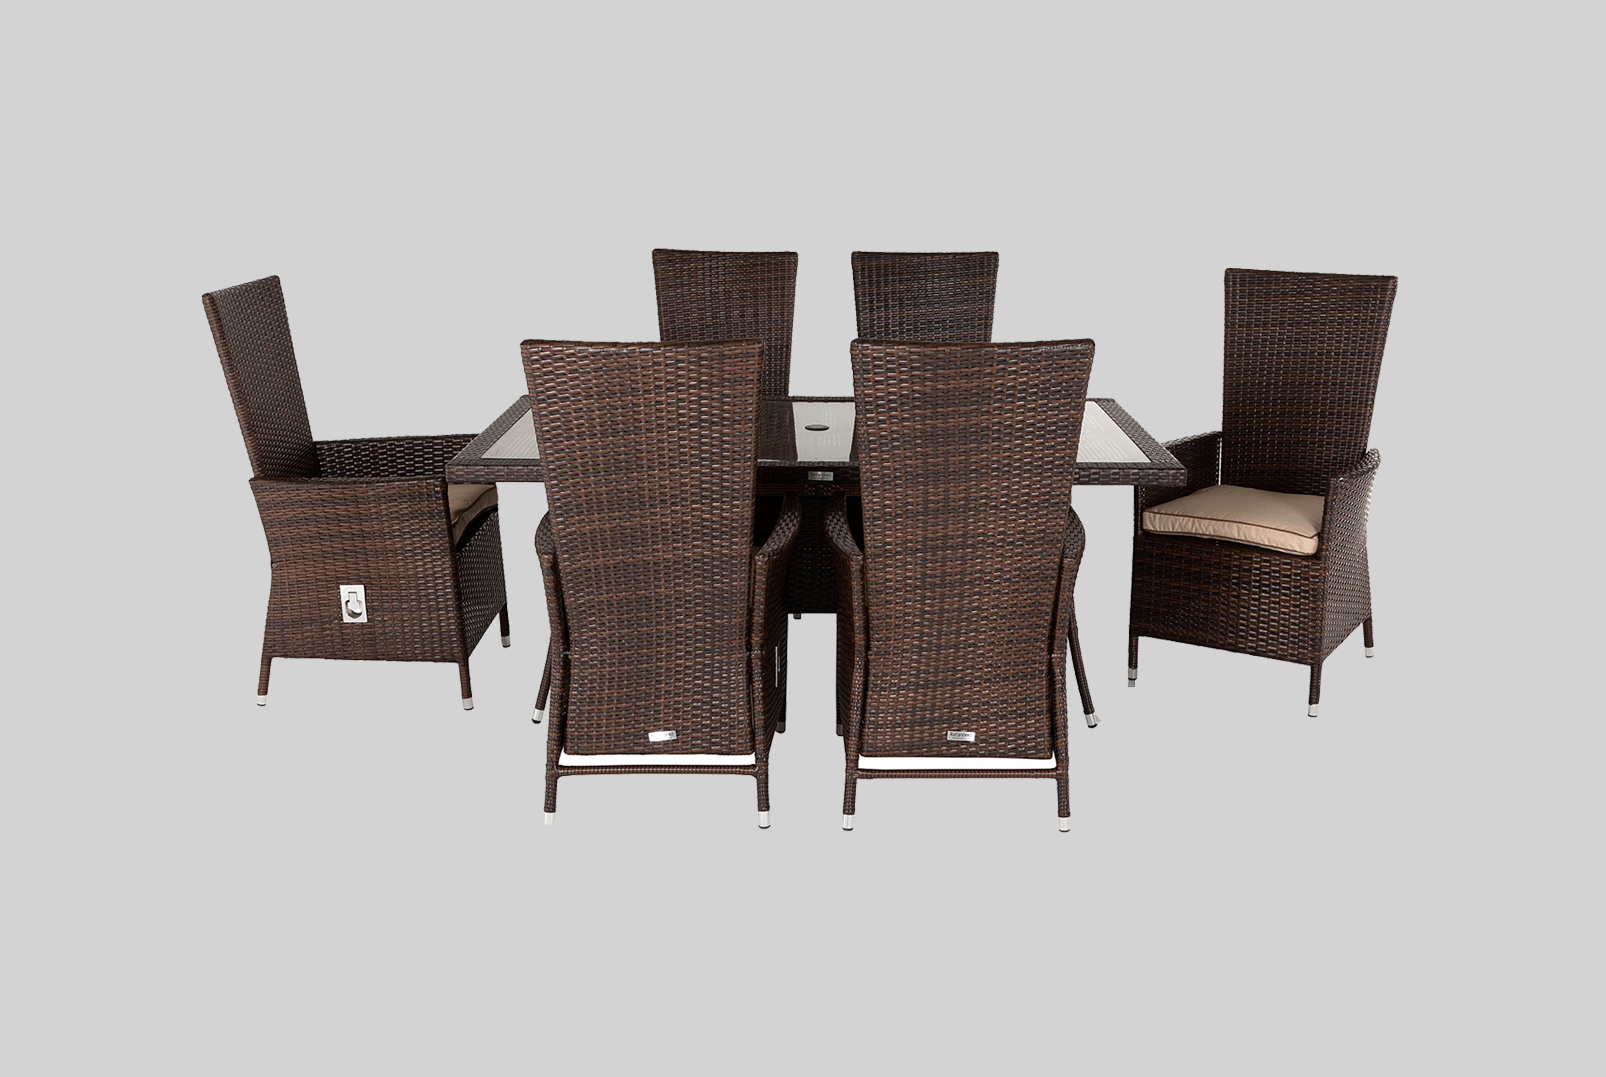 Garden Rattan Sofa Uk Rattan Garden Furniture Sets Outdoor Patio Furniture